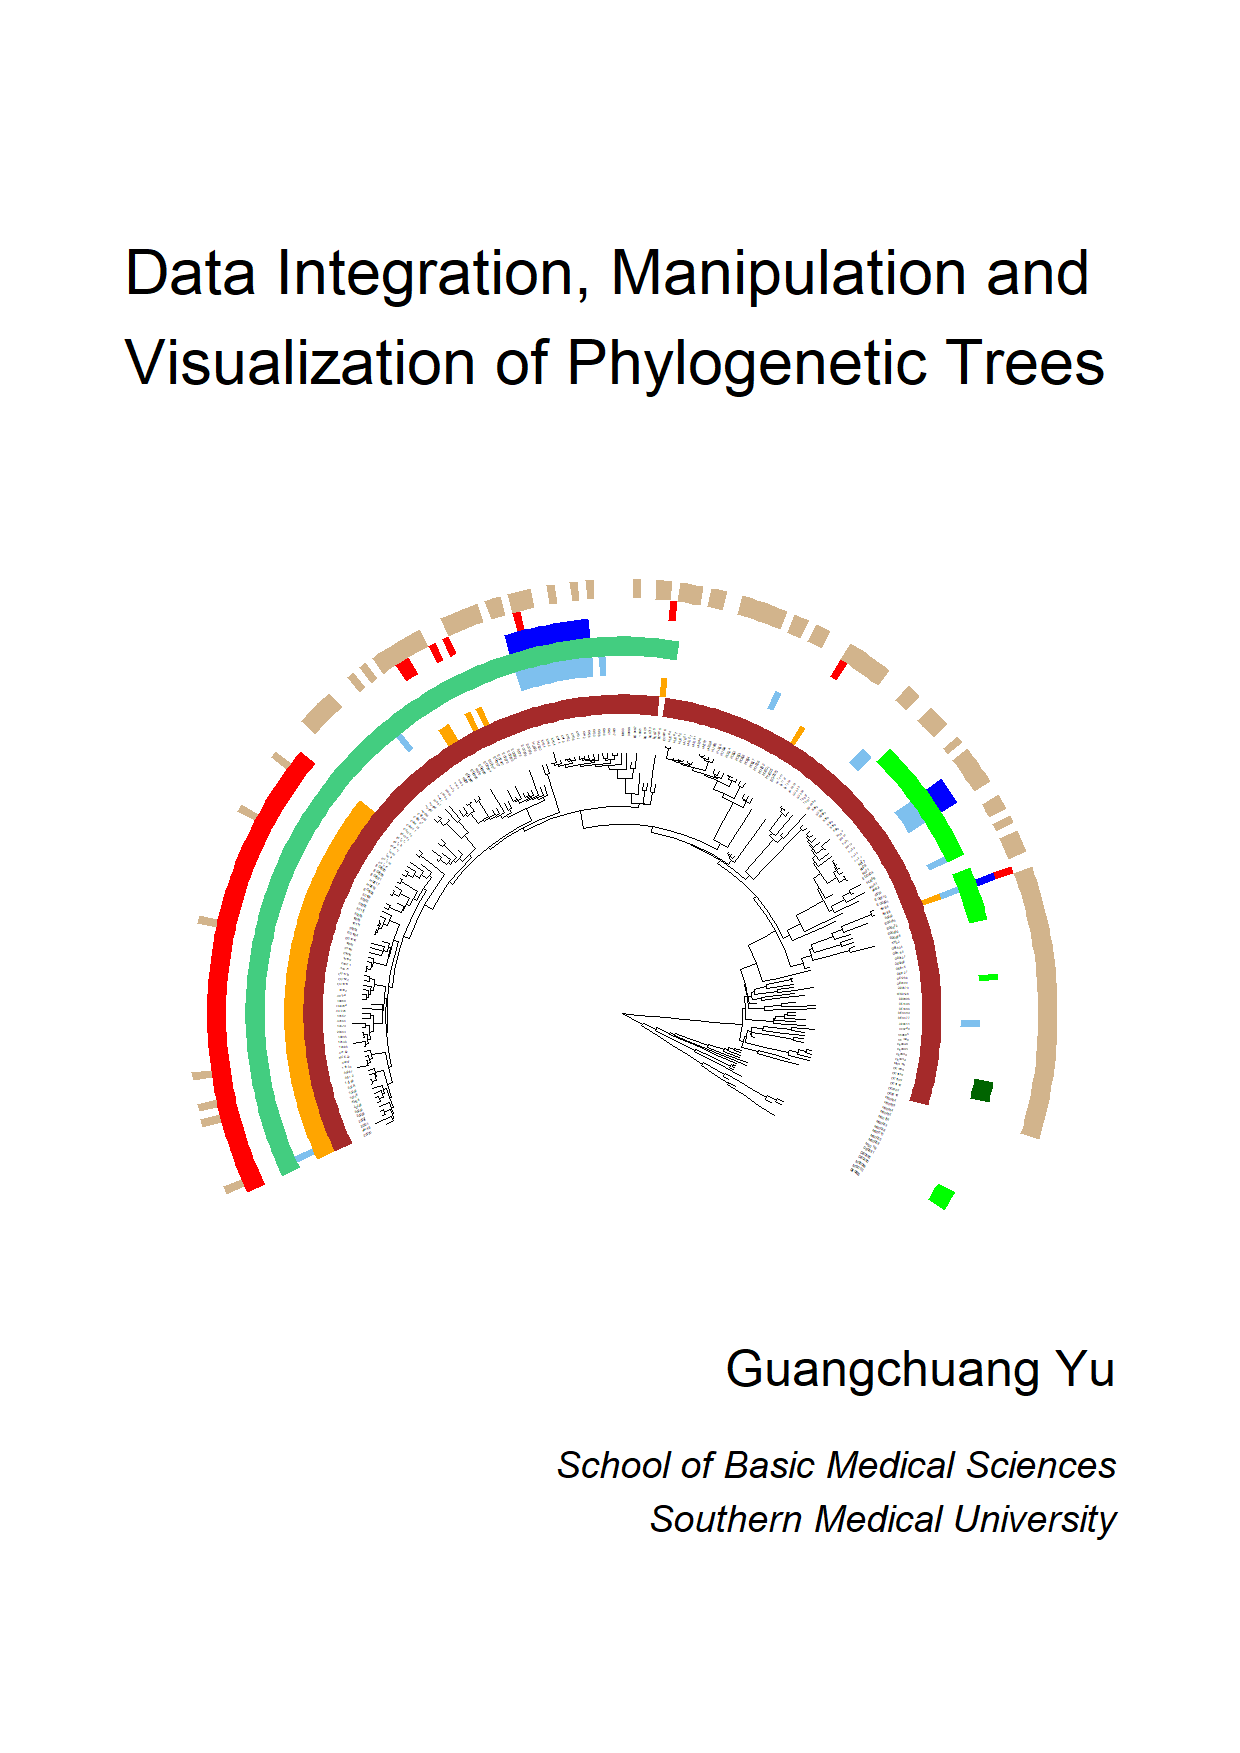 Data Integration, Manipulation and Visualization of Phylogenetic Trees